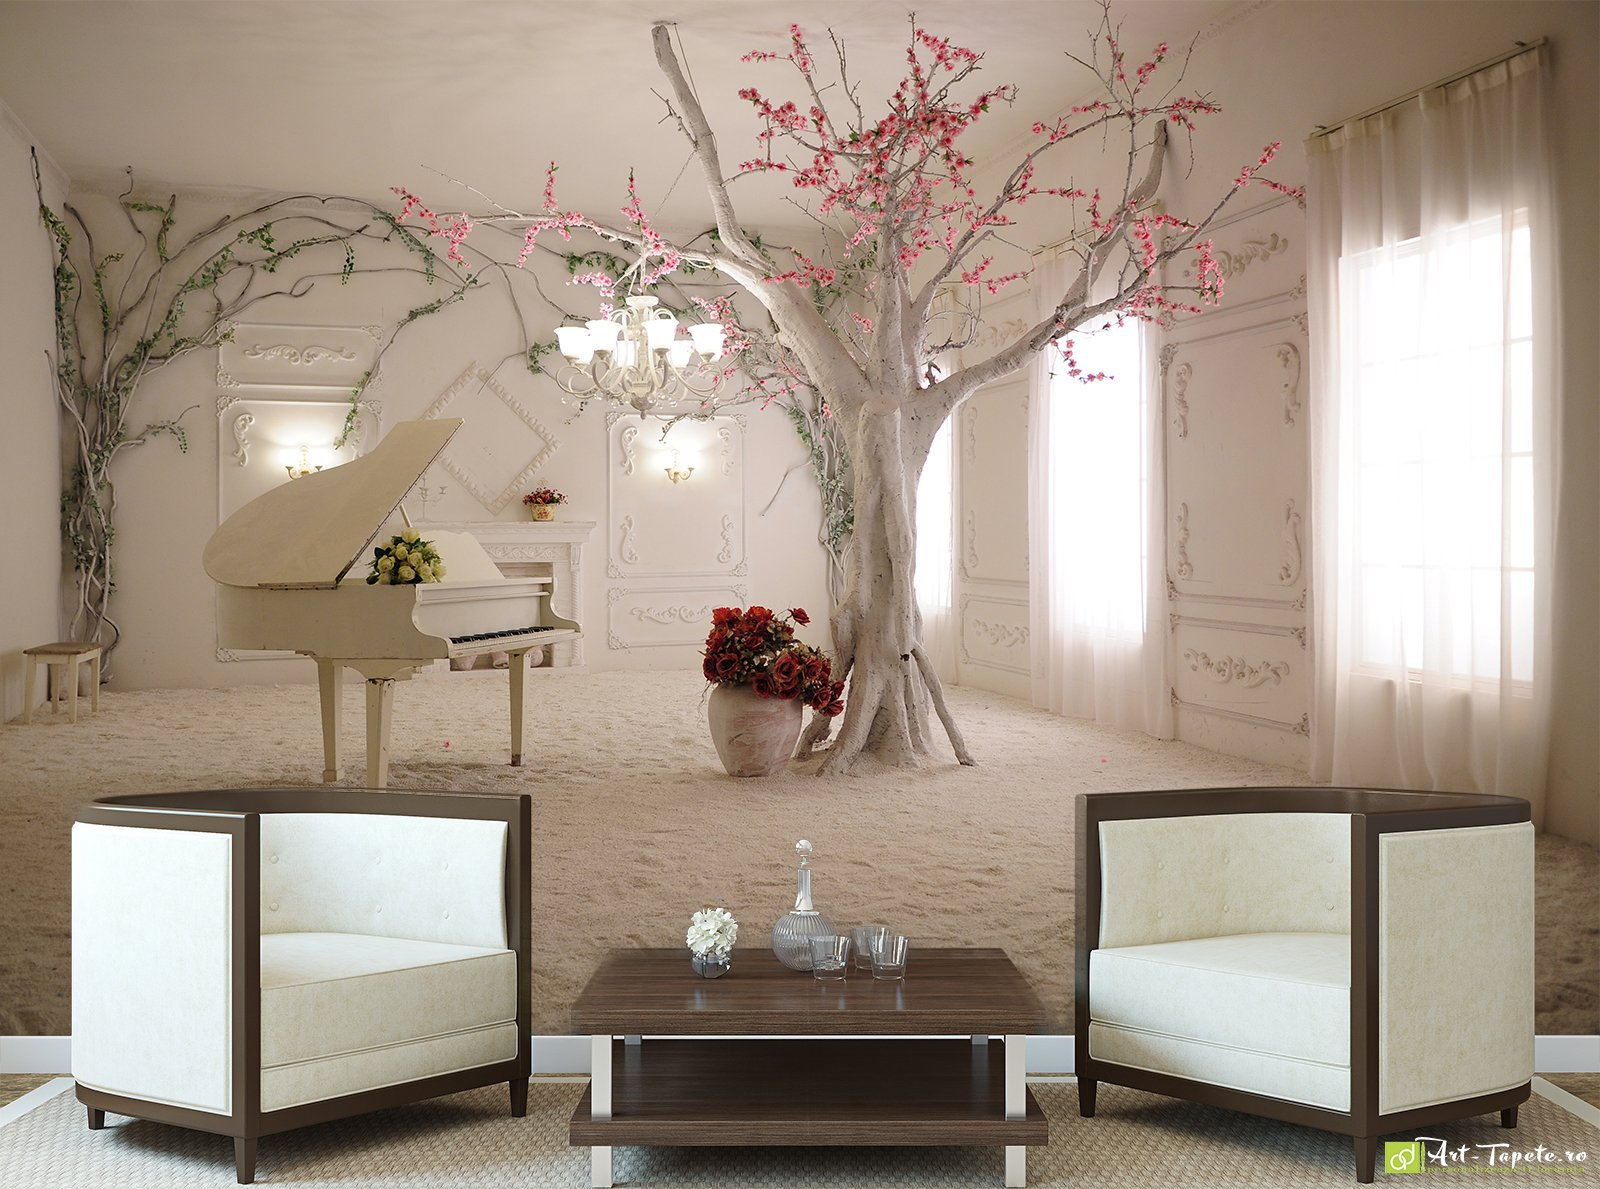 Wall Murals Digital Wallpaper Space Perspective Fototapet Art Check Out Our Stunning Photo Wallpaper Options For A Quality Wall Mural Buy Online